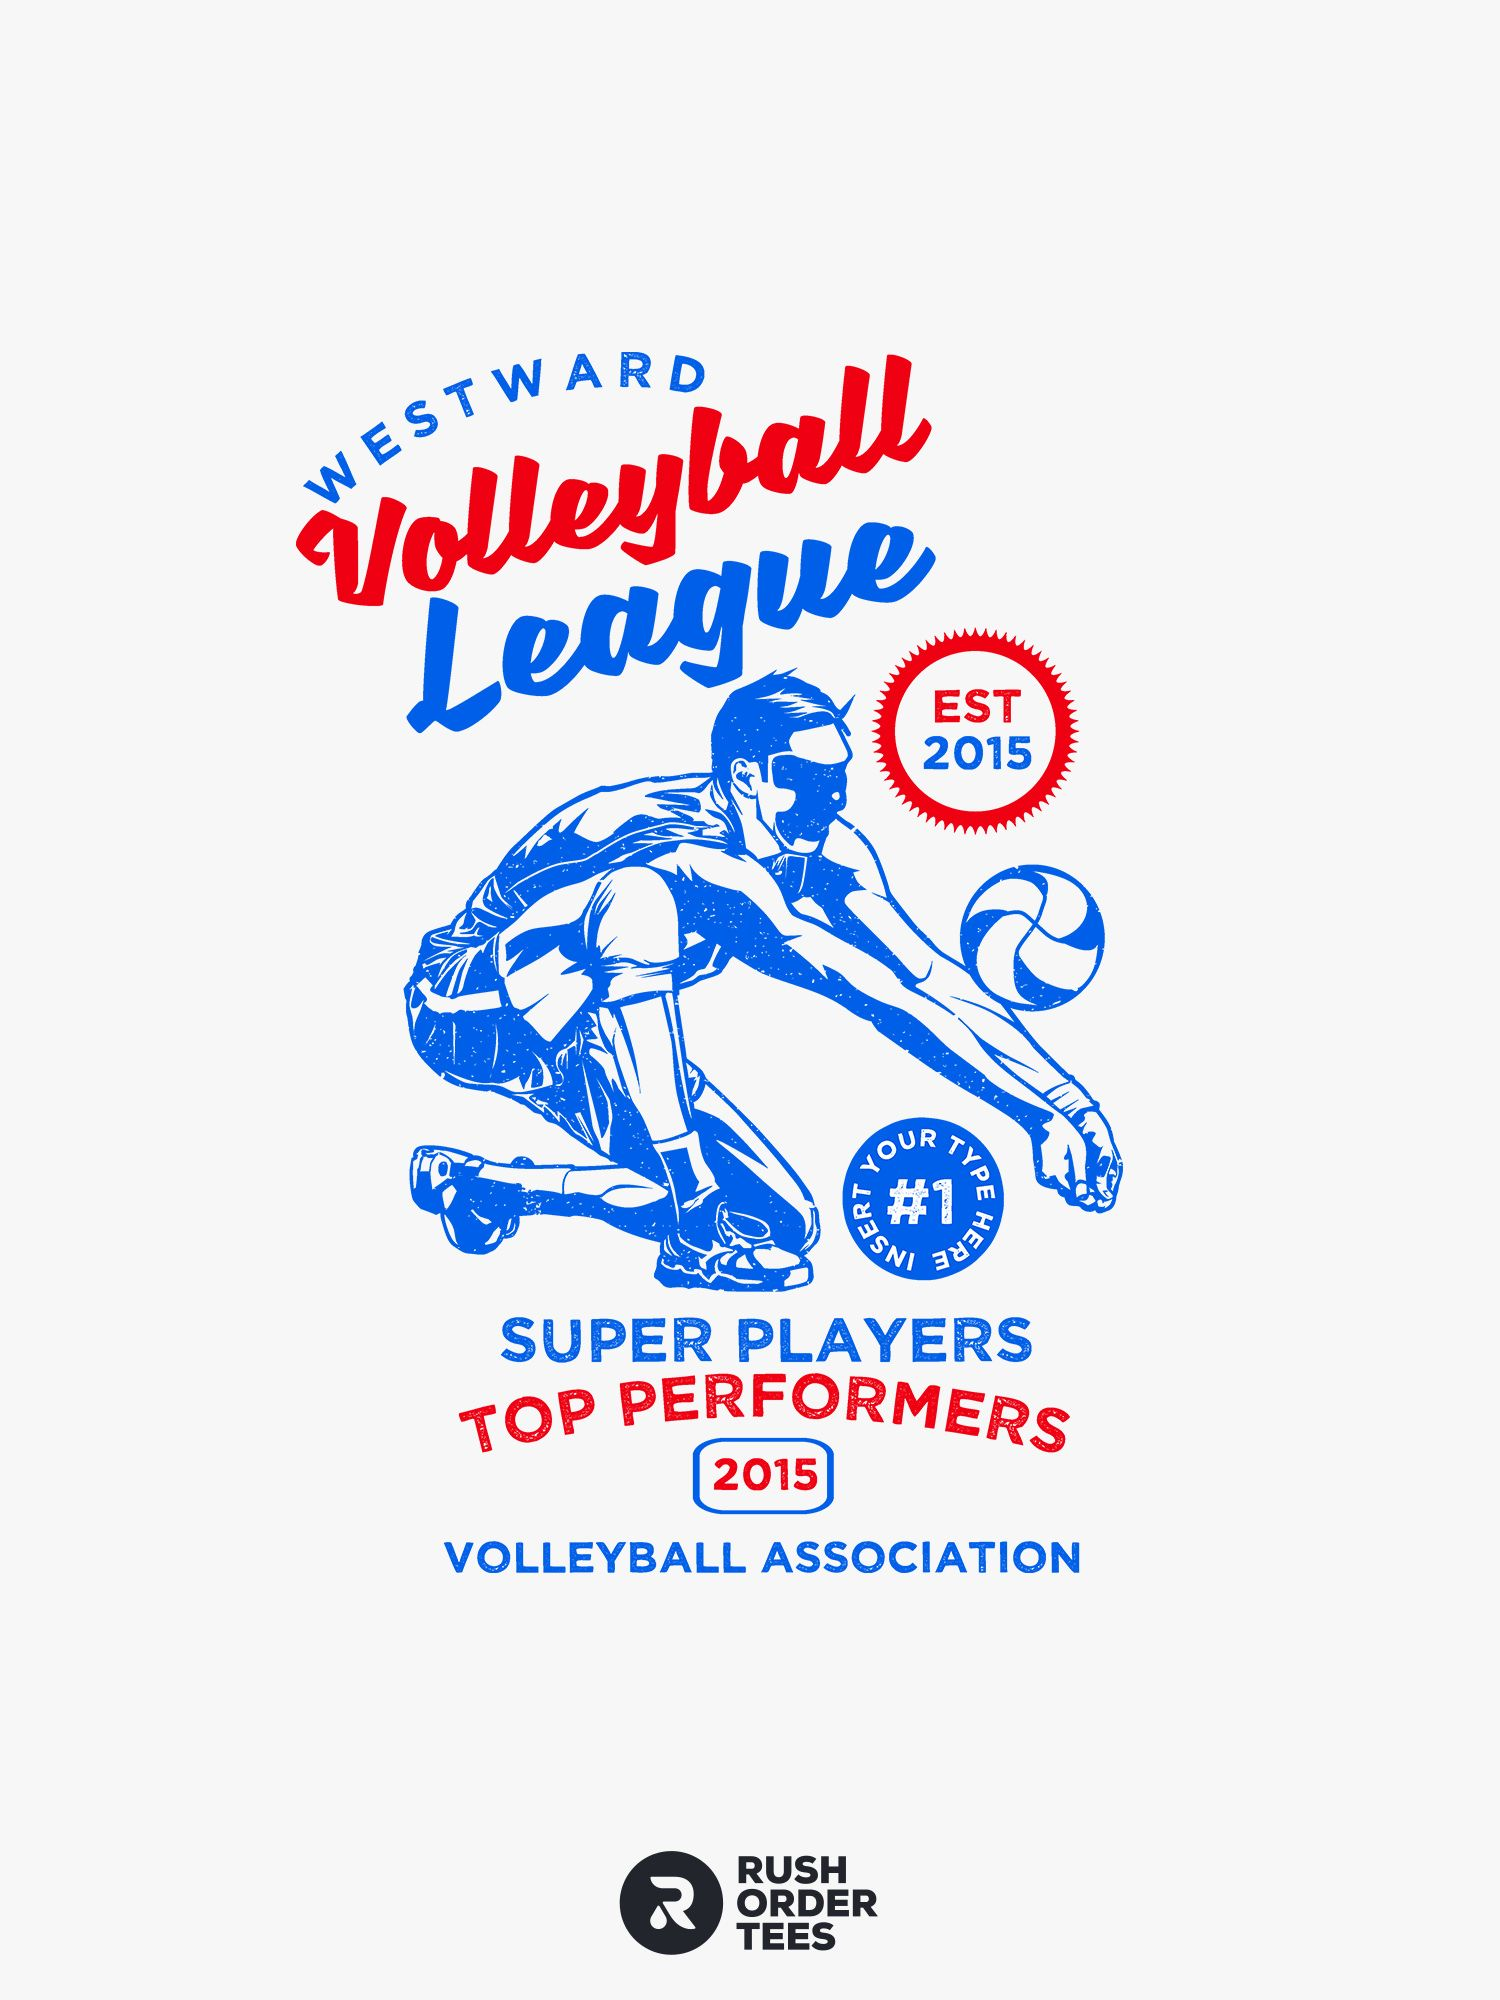 School Volleyball Shirt Design In 2020 Volleyball T Shirt Designs Volleyball Shirt Designs Volleyball Designs